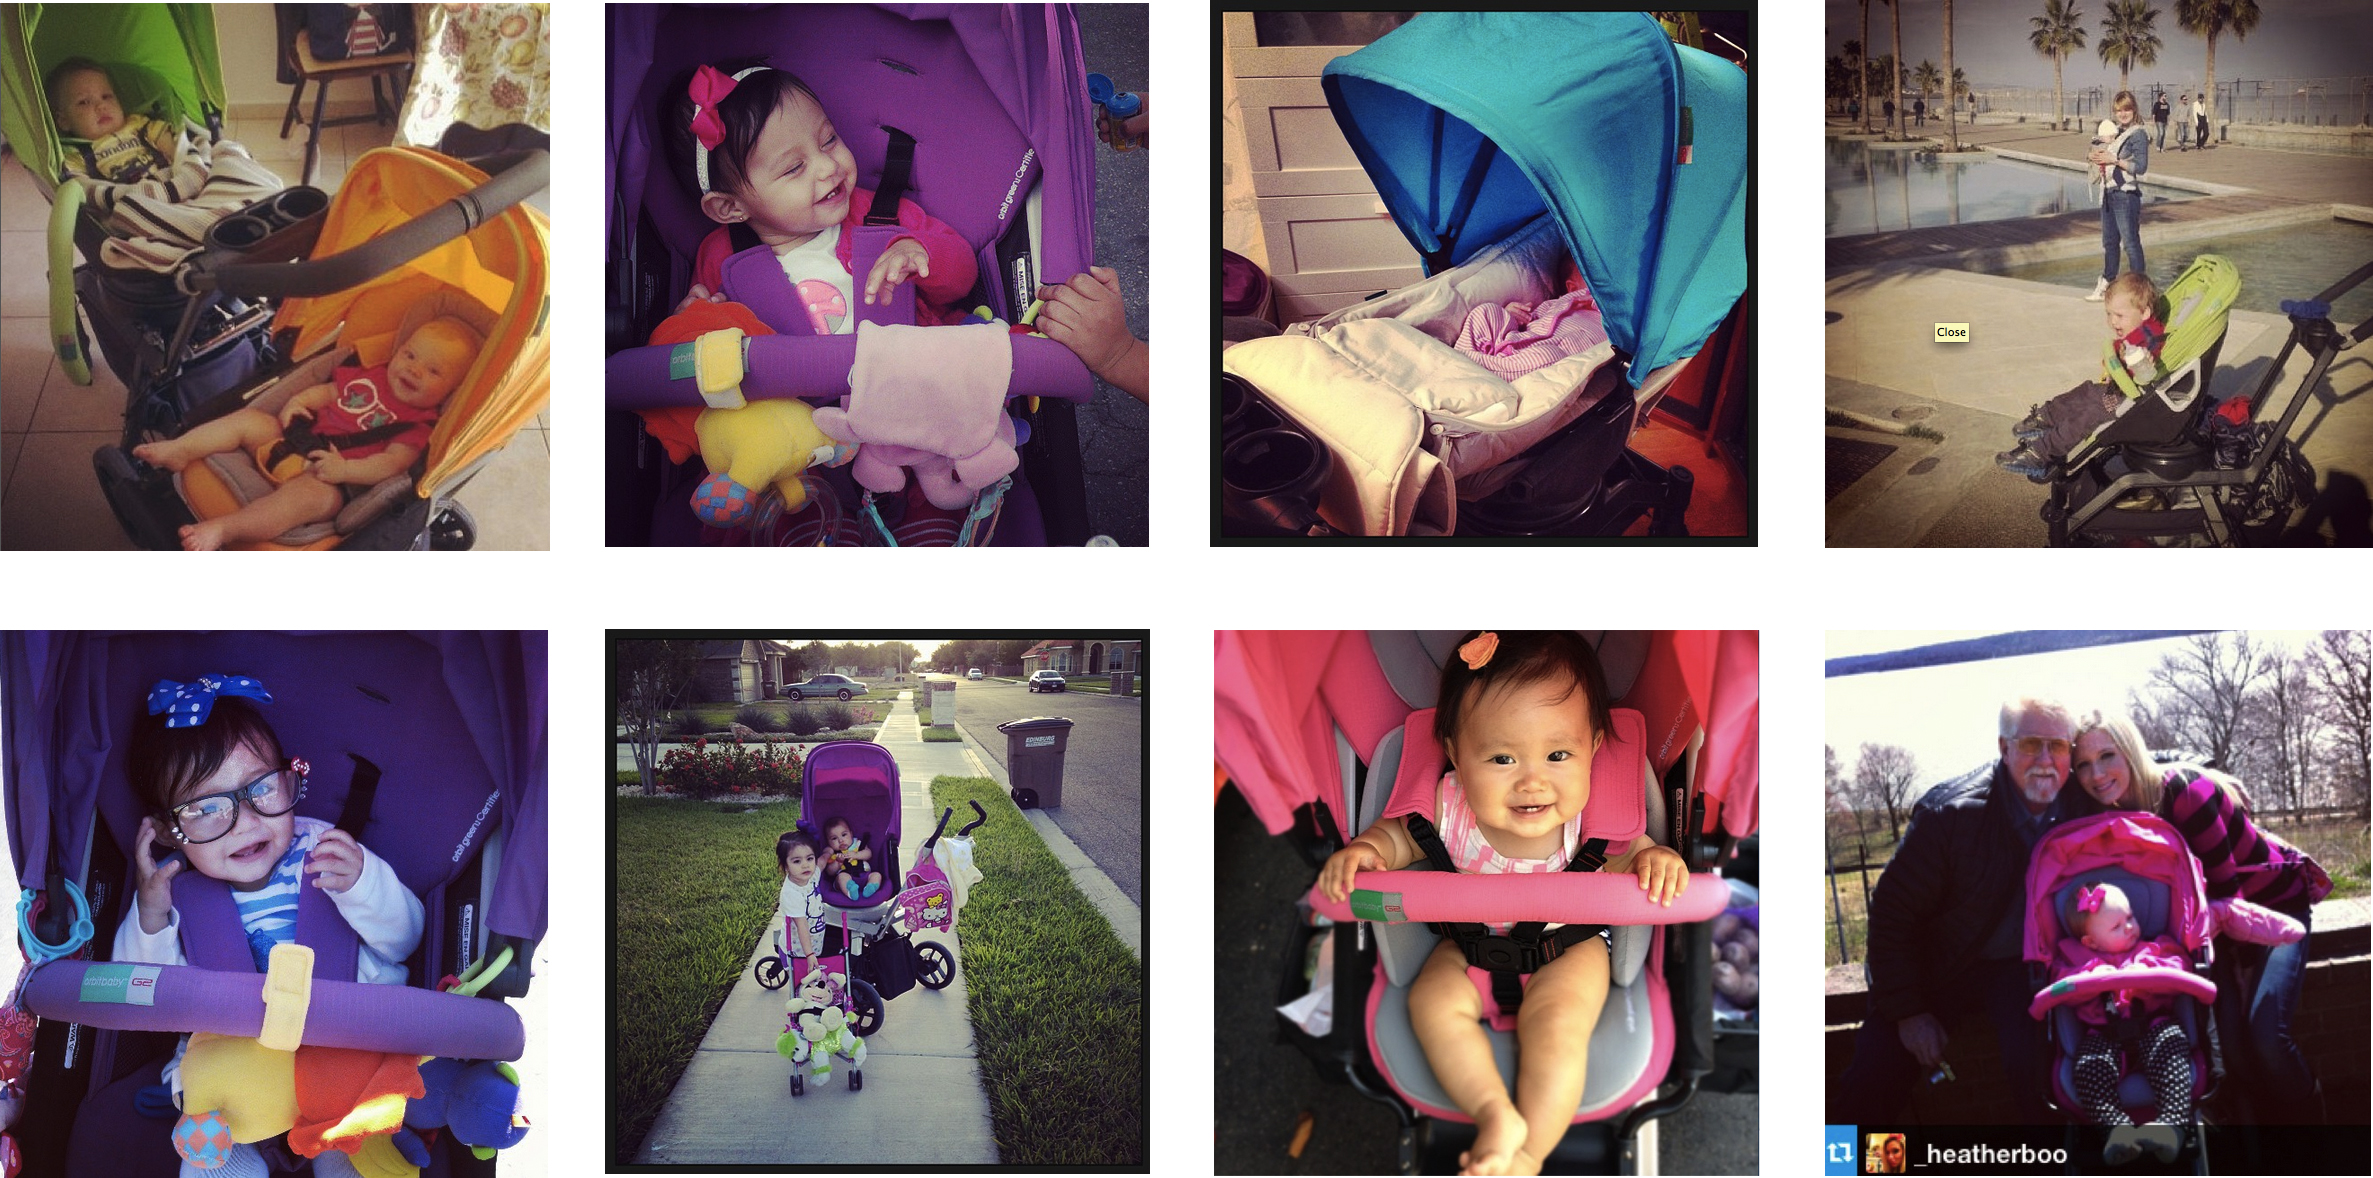 Images from Orbit Baby (#orbitbaby) fans and @ohjoy on Instagram